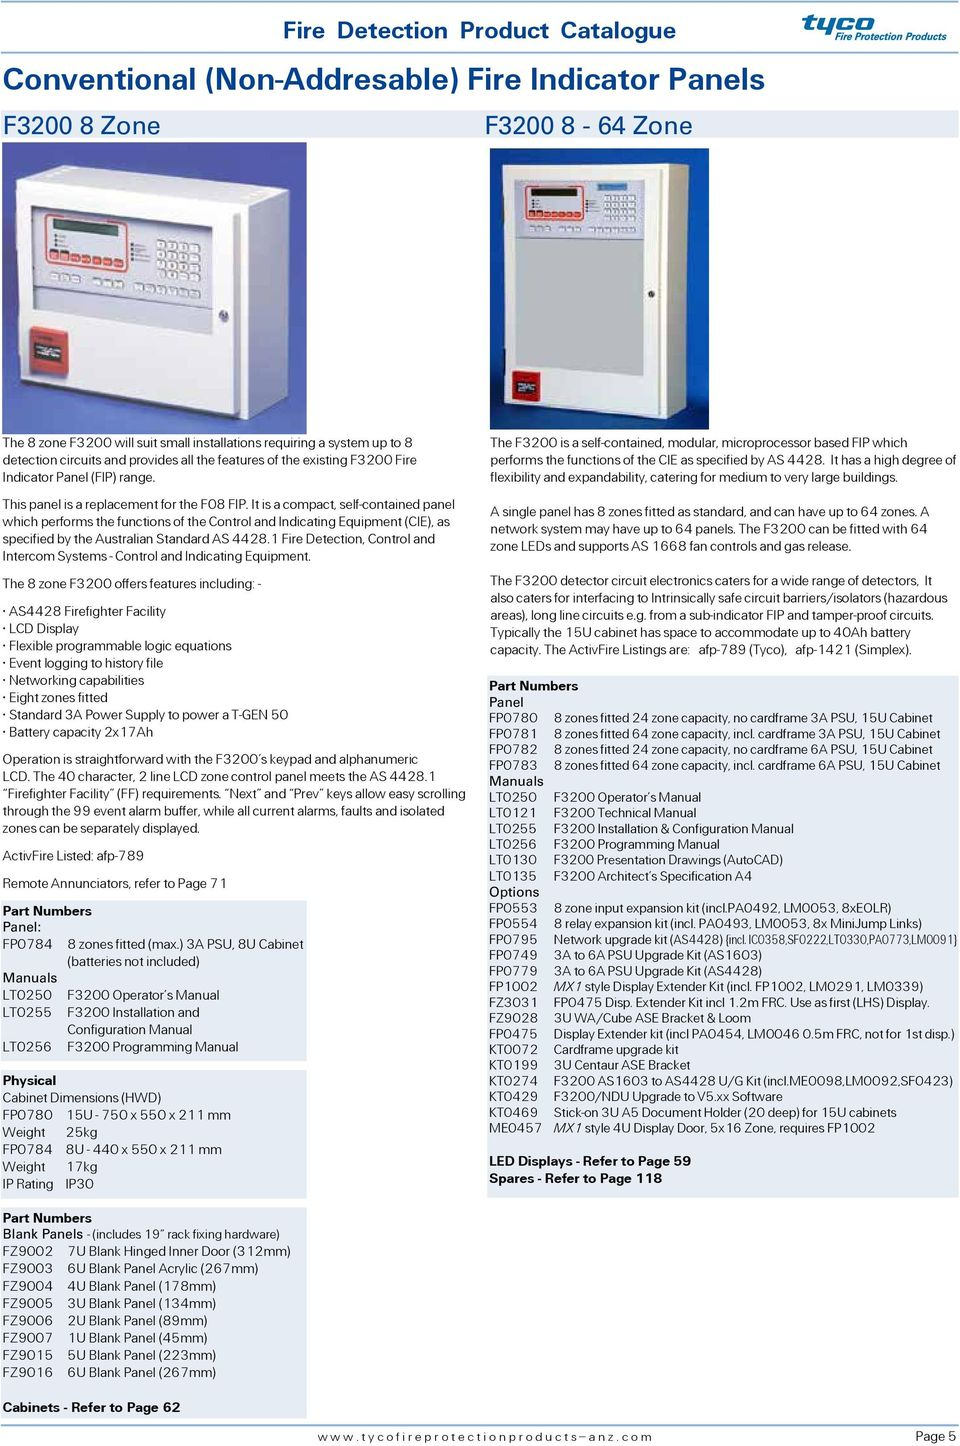 Fire Detection Product Catalogue Australia Issue 4 Pdf System Ebl128 Panasonic Electric Works Europe Ag It Is A Compact Self Contained Panel Which Performs The Functions Of Control